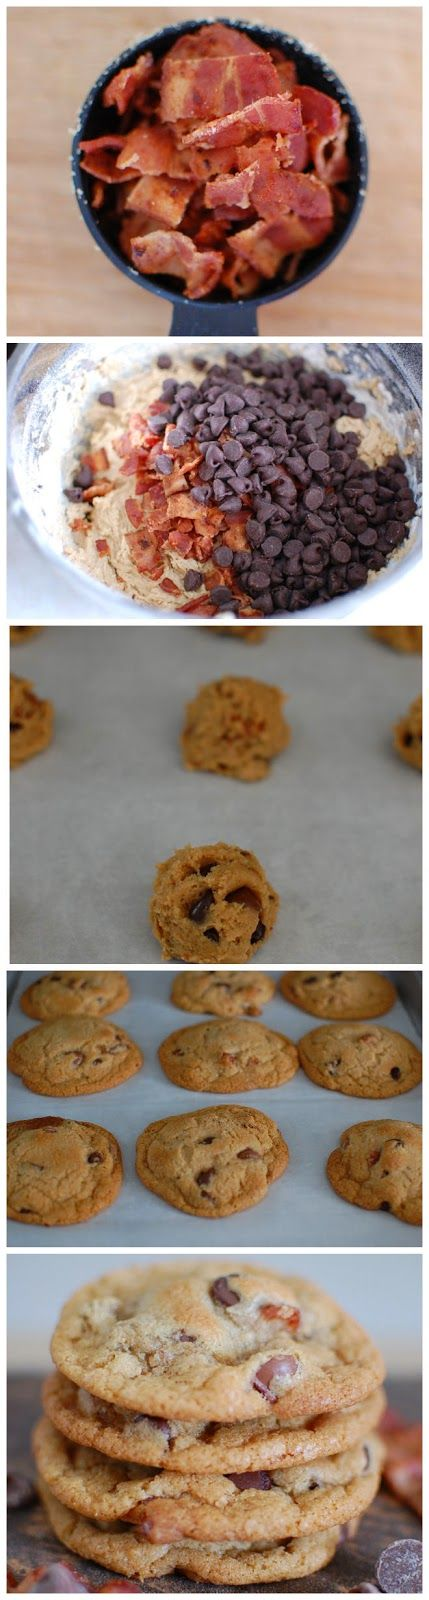 Made these Bacon Chocolate Chip Cookies for a church party tonight. Turned out really yummy! Substituted with g free flour with xanthum gum. -A 5/24/14   http://foodfunlife.blogspot.com/2013/02/bacon-chocolate-chip-cookies.html